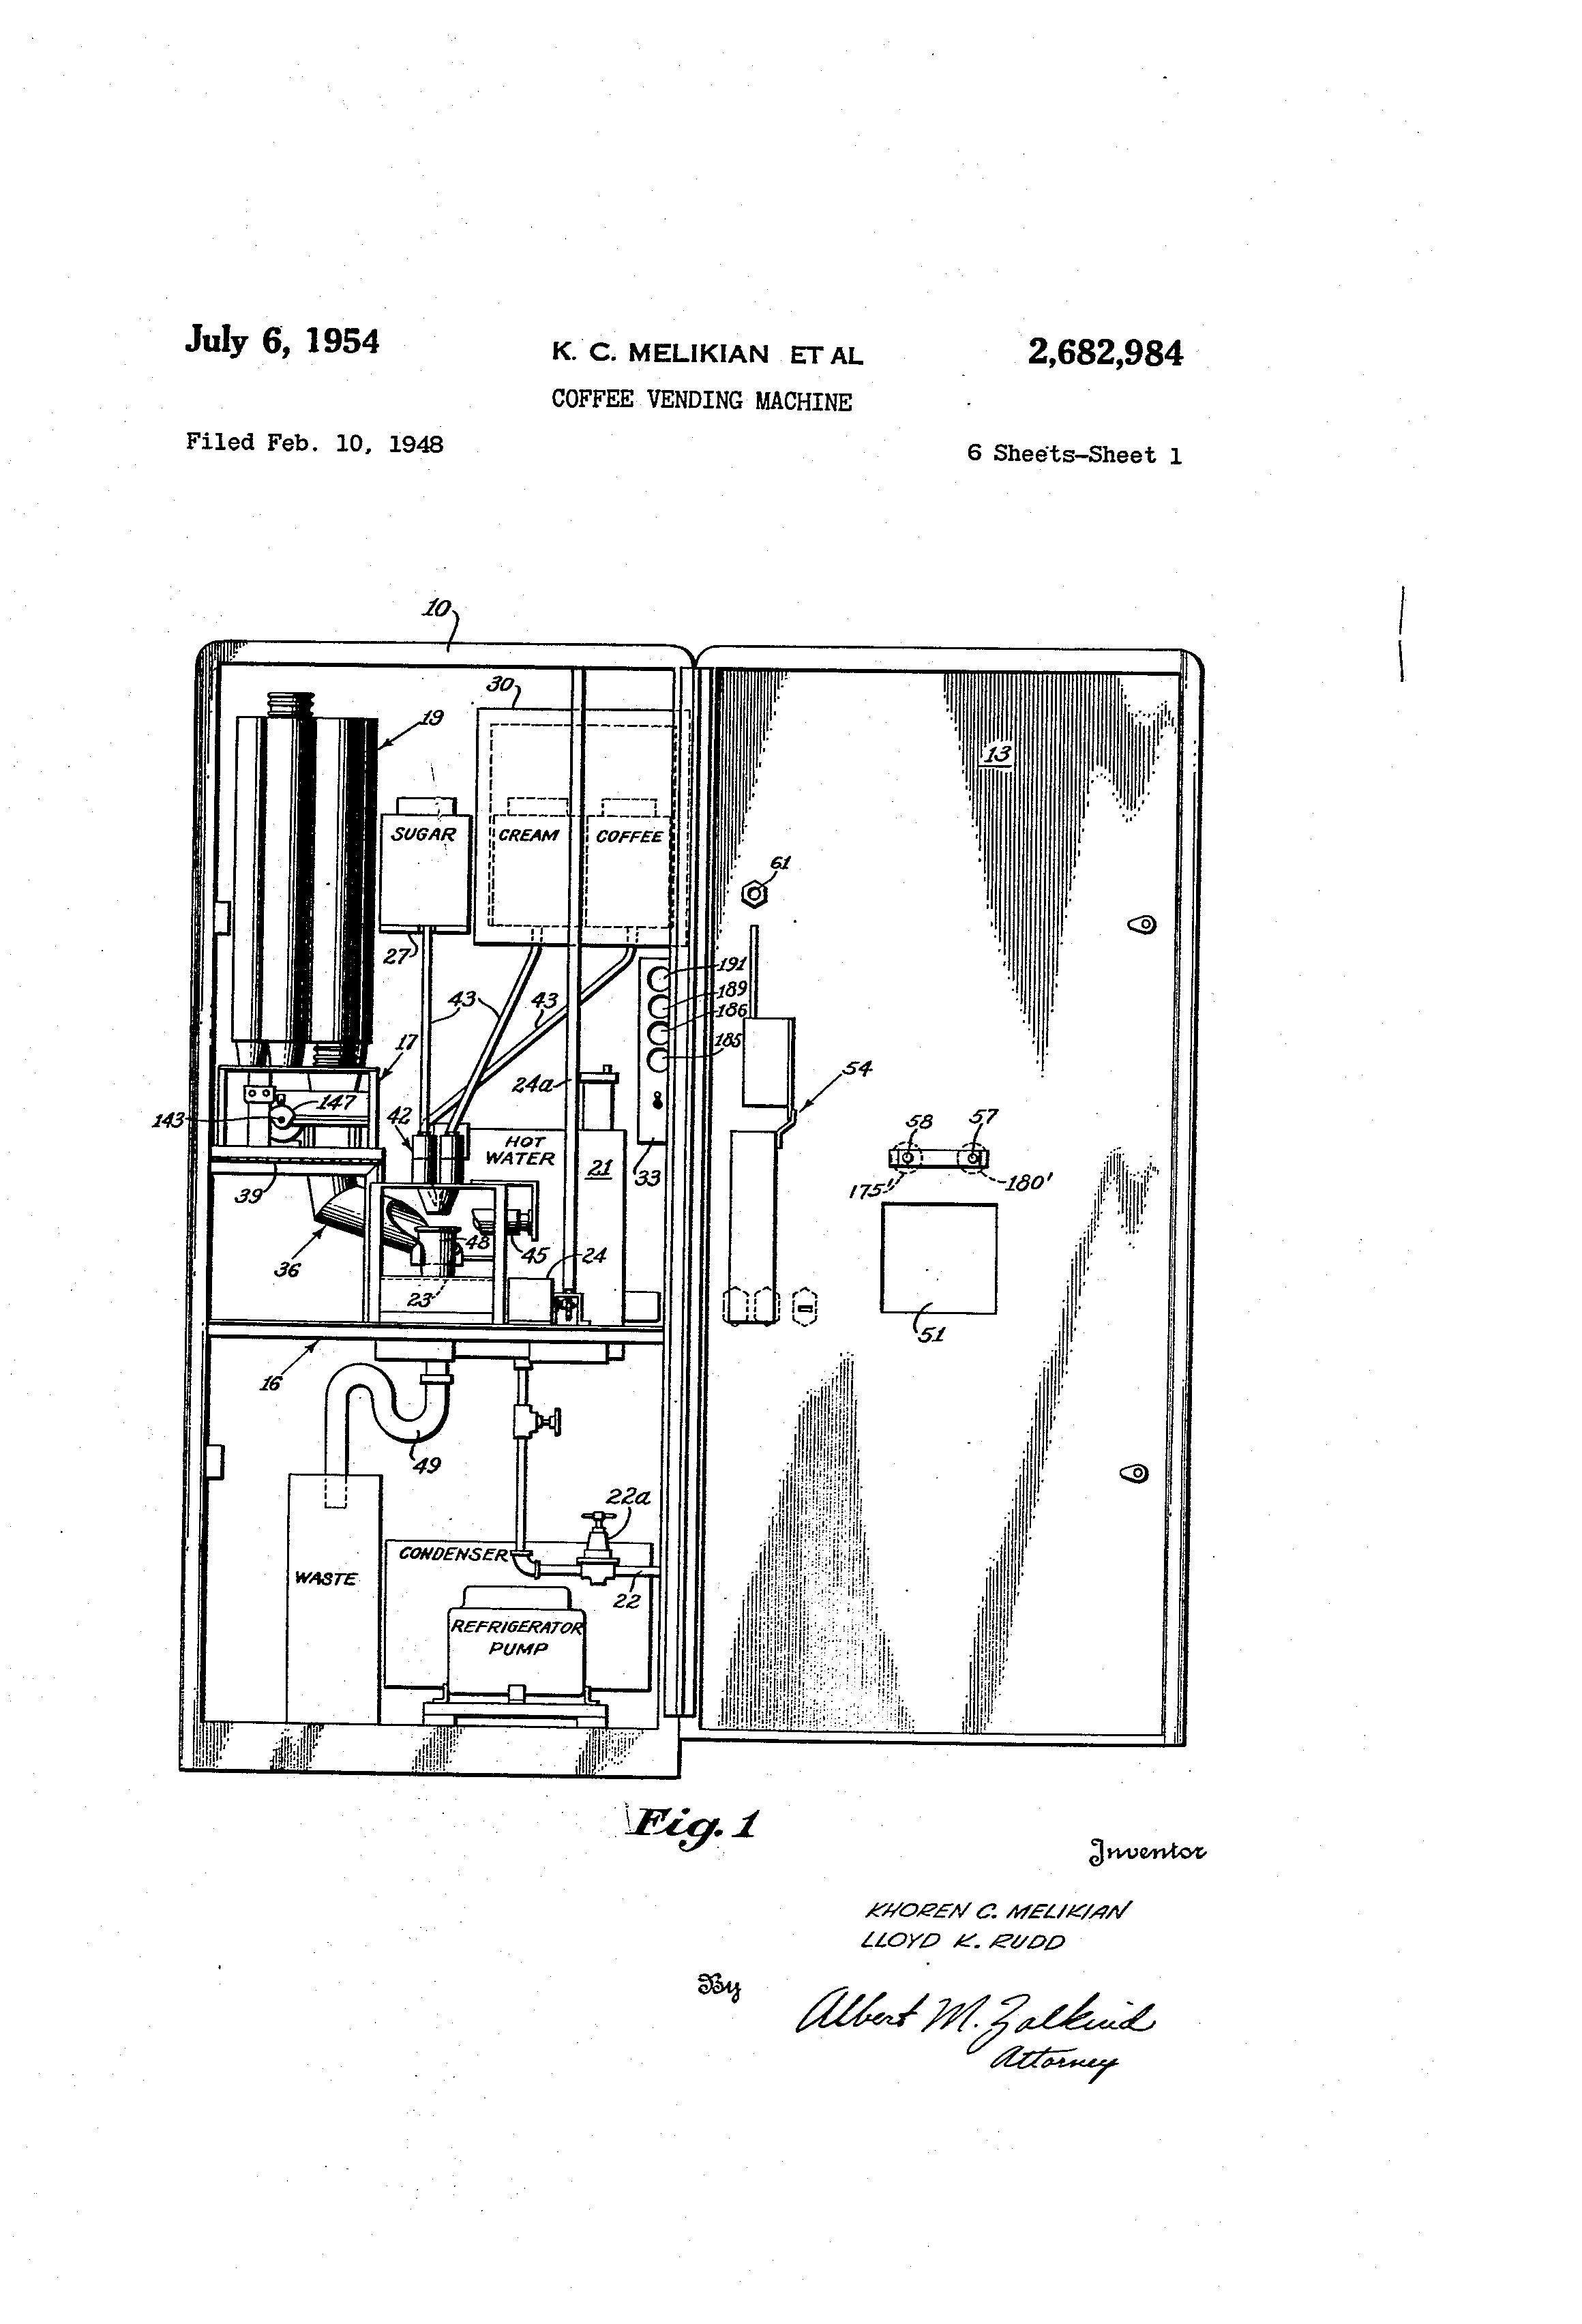 patent us2682984 - coffee vending machine